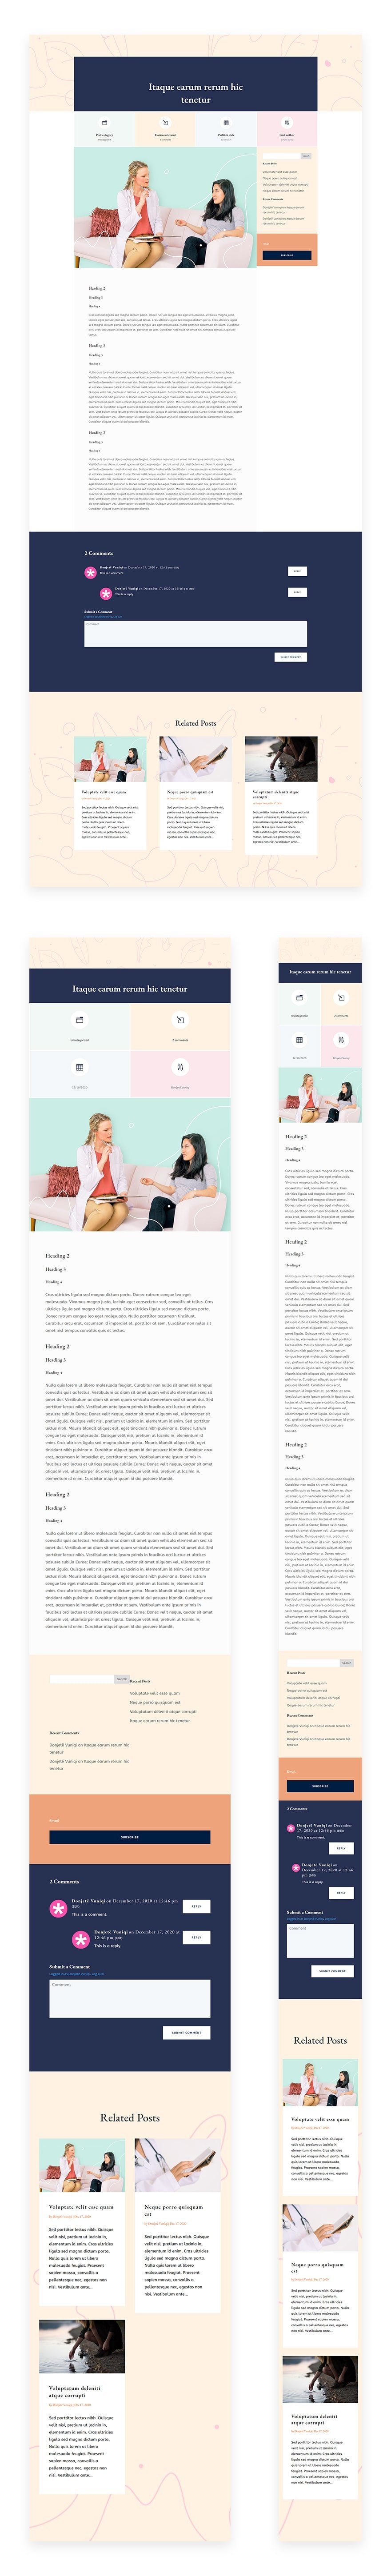 download-a-free-blog-post-template-for-divis-womens-health-center-layout-pack Download a FREE Blog Post Template for Divi's Women's Health Center Layout Pack